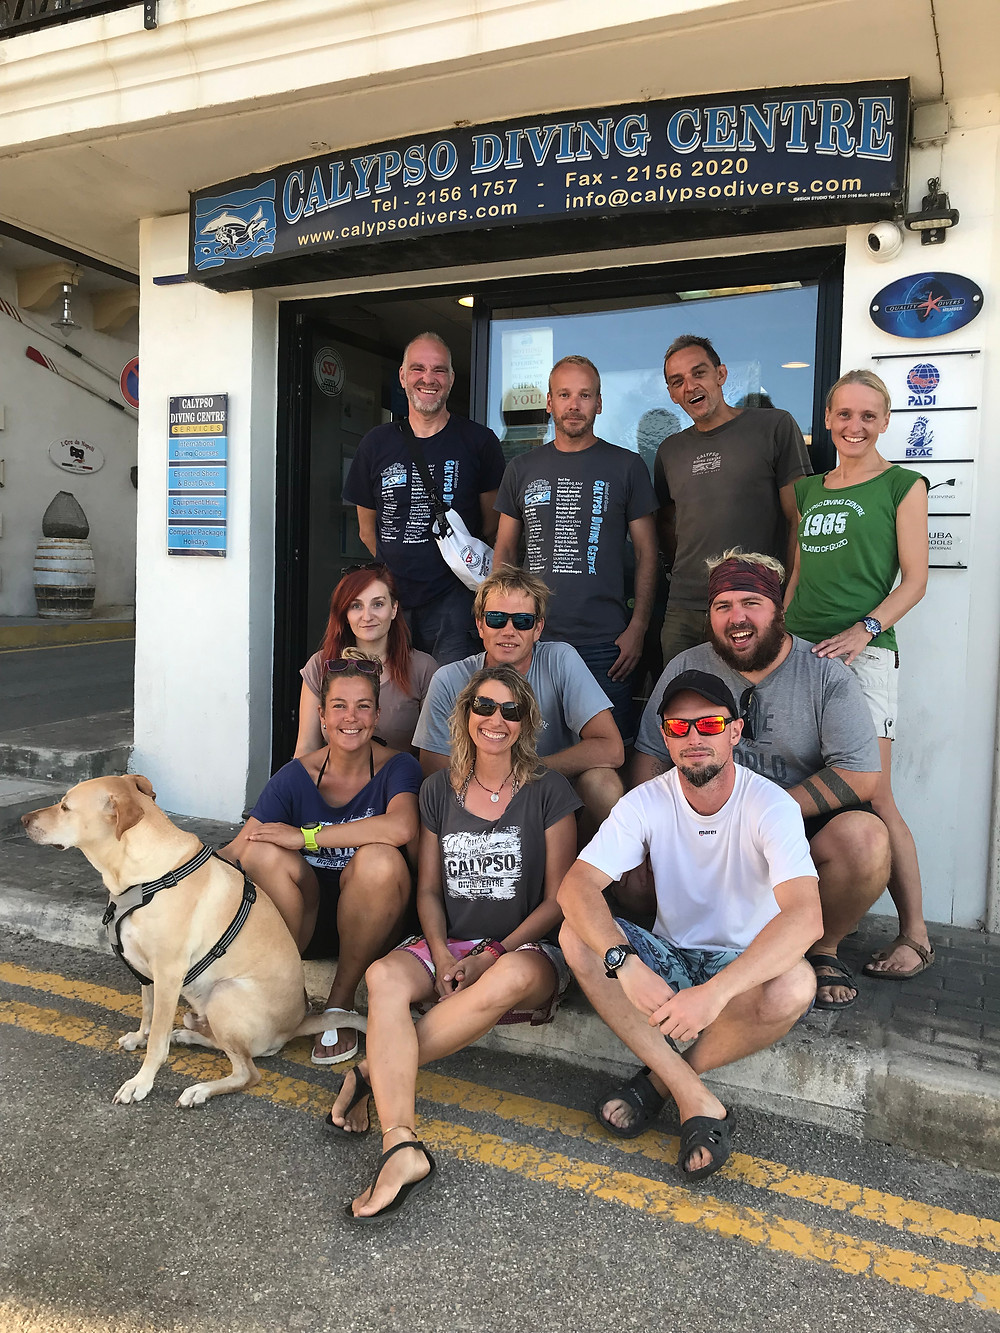 Group photo of dive team